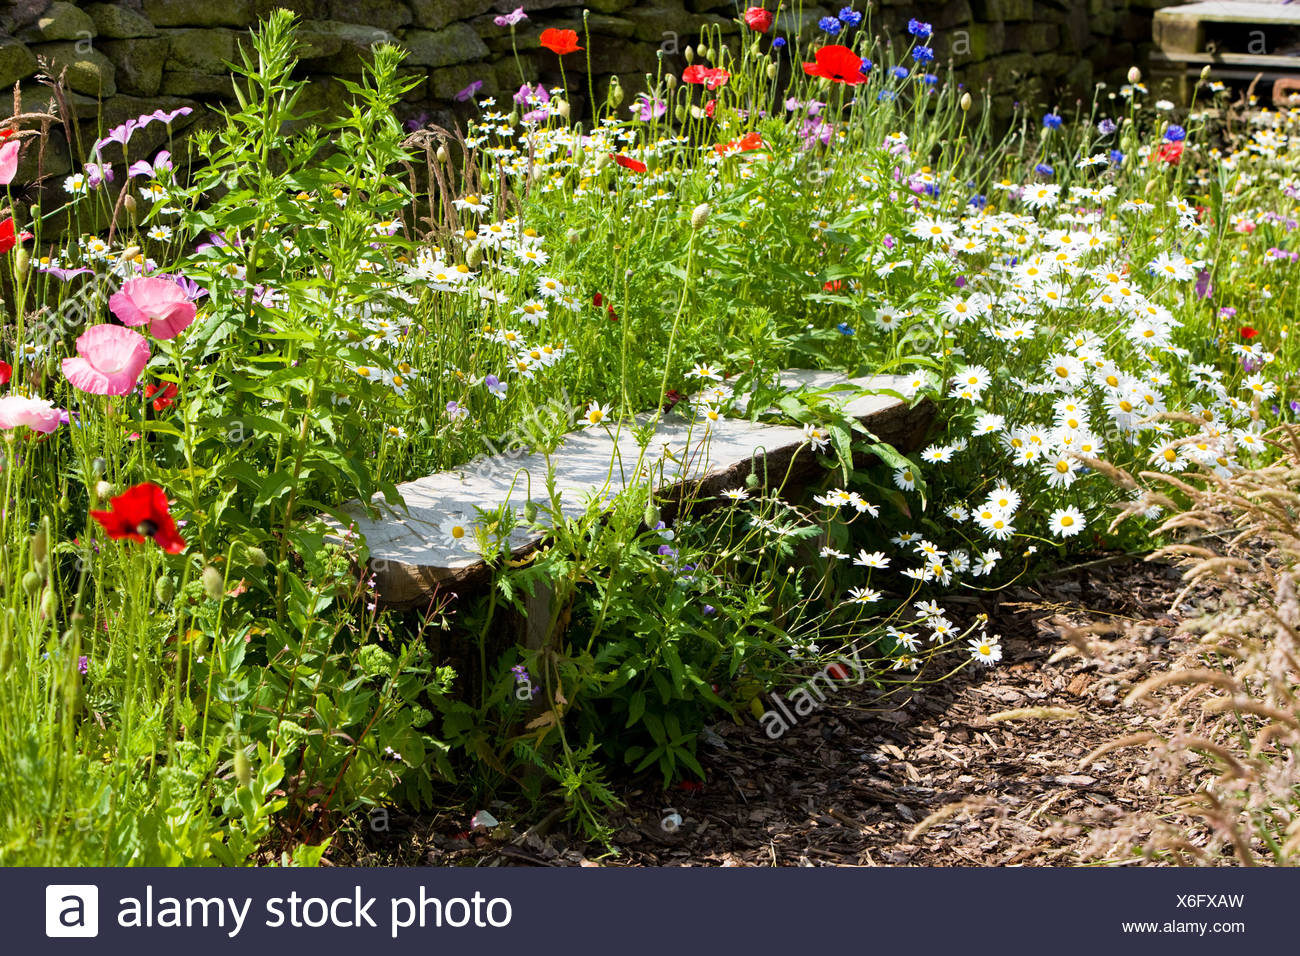 a bench surrounded by arable weeds - Stock Image